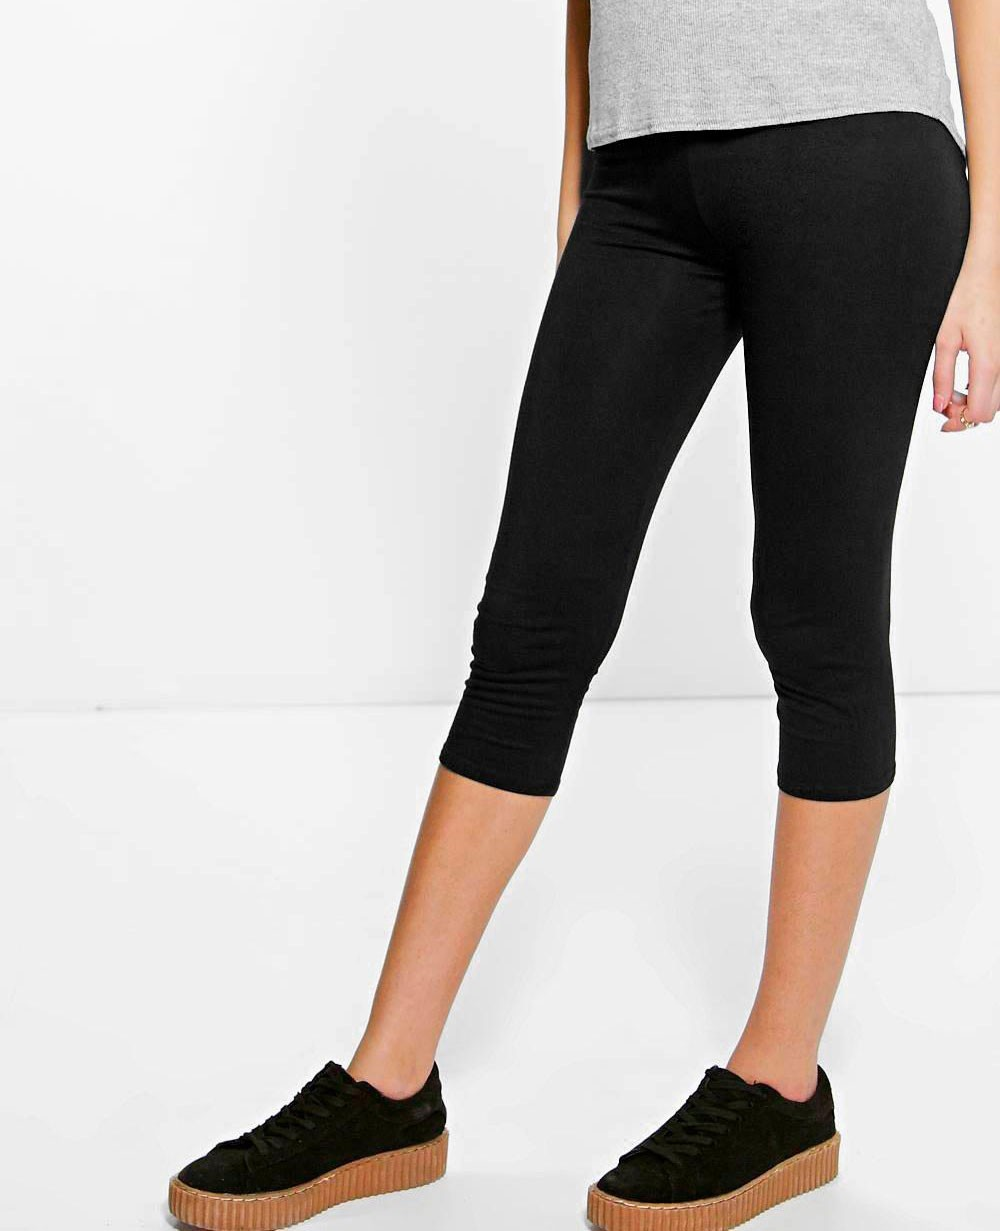 Shop for capri leggings online at Target. Free shipping on purchases over $35 and save 5% every day with your Target REDcard.